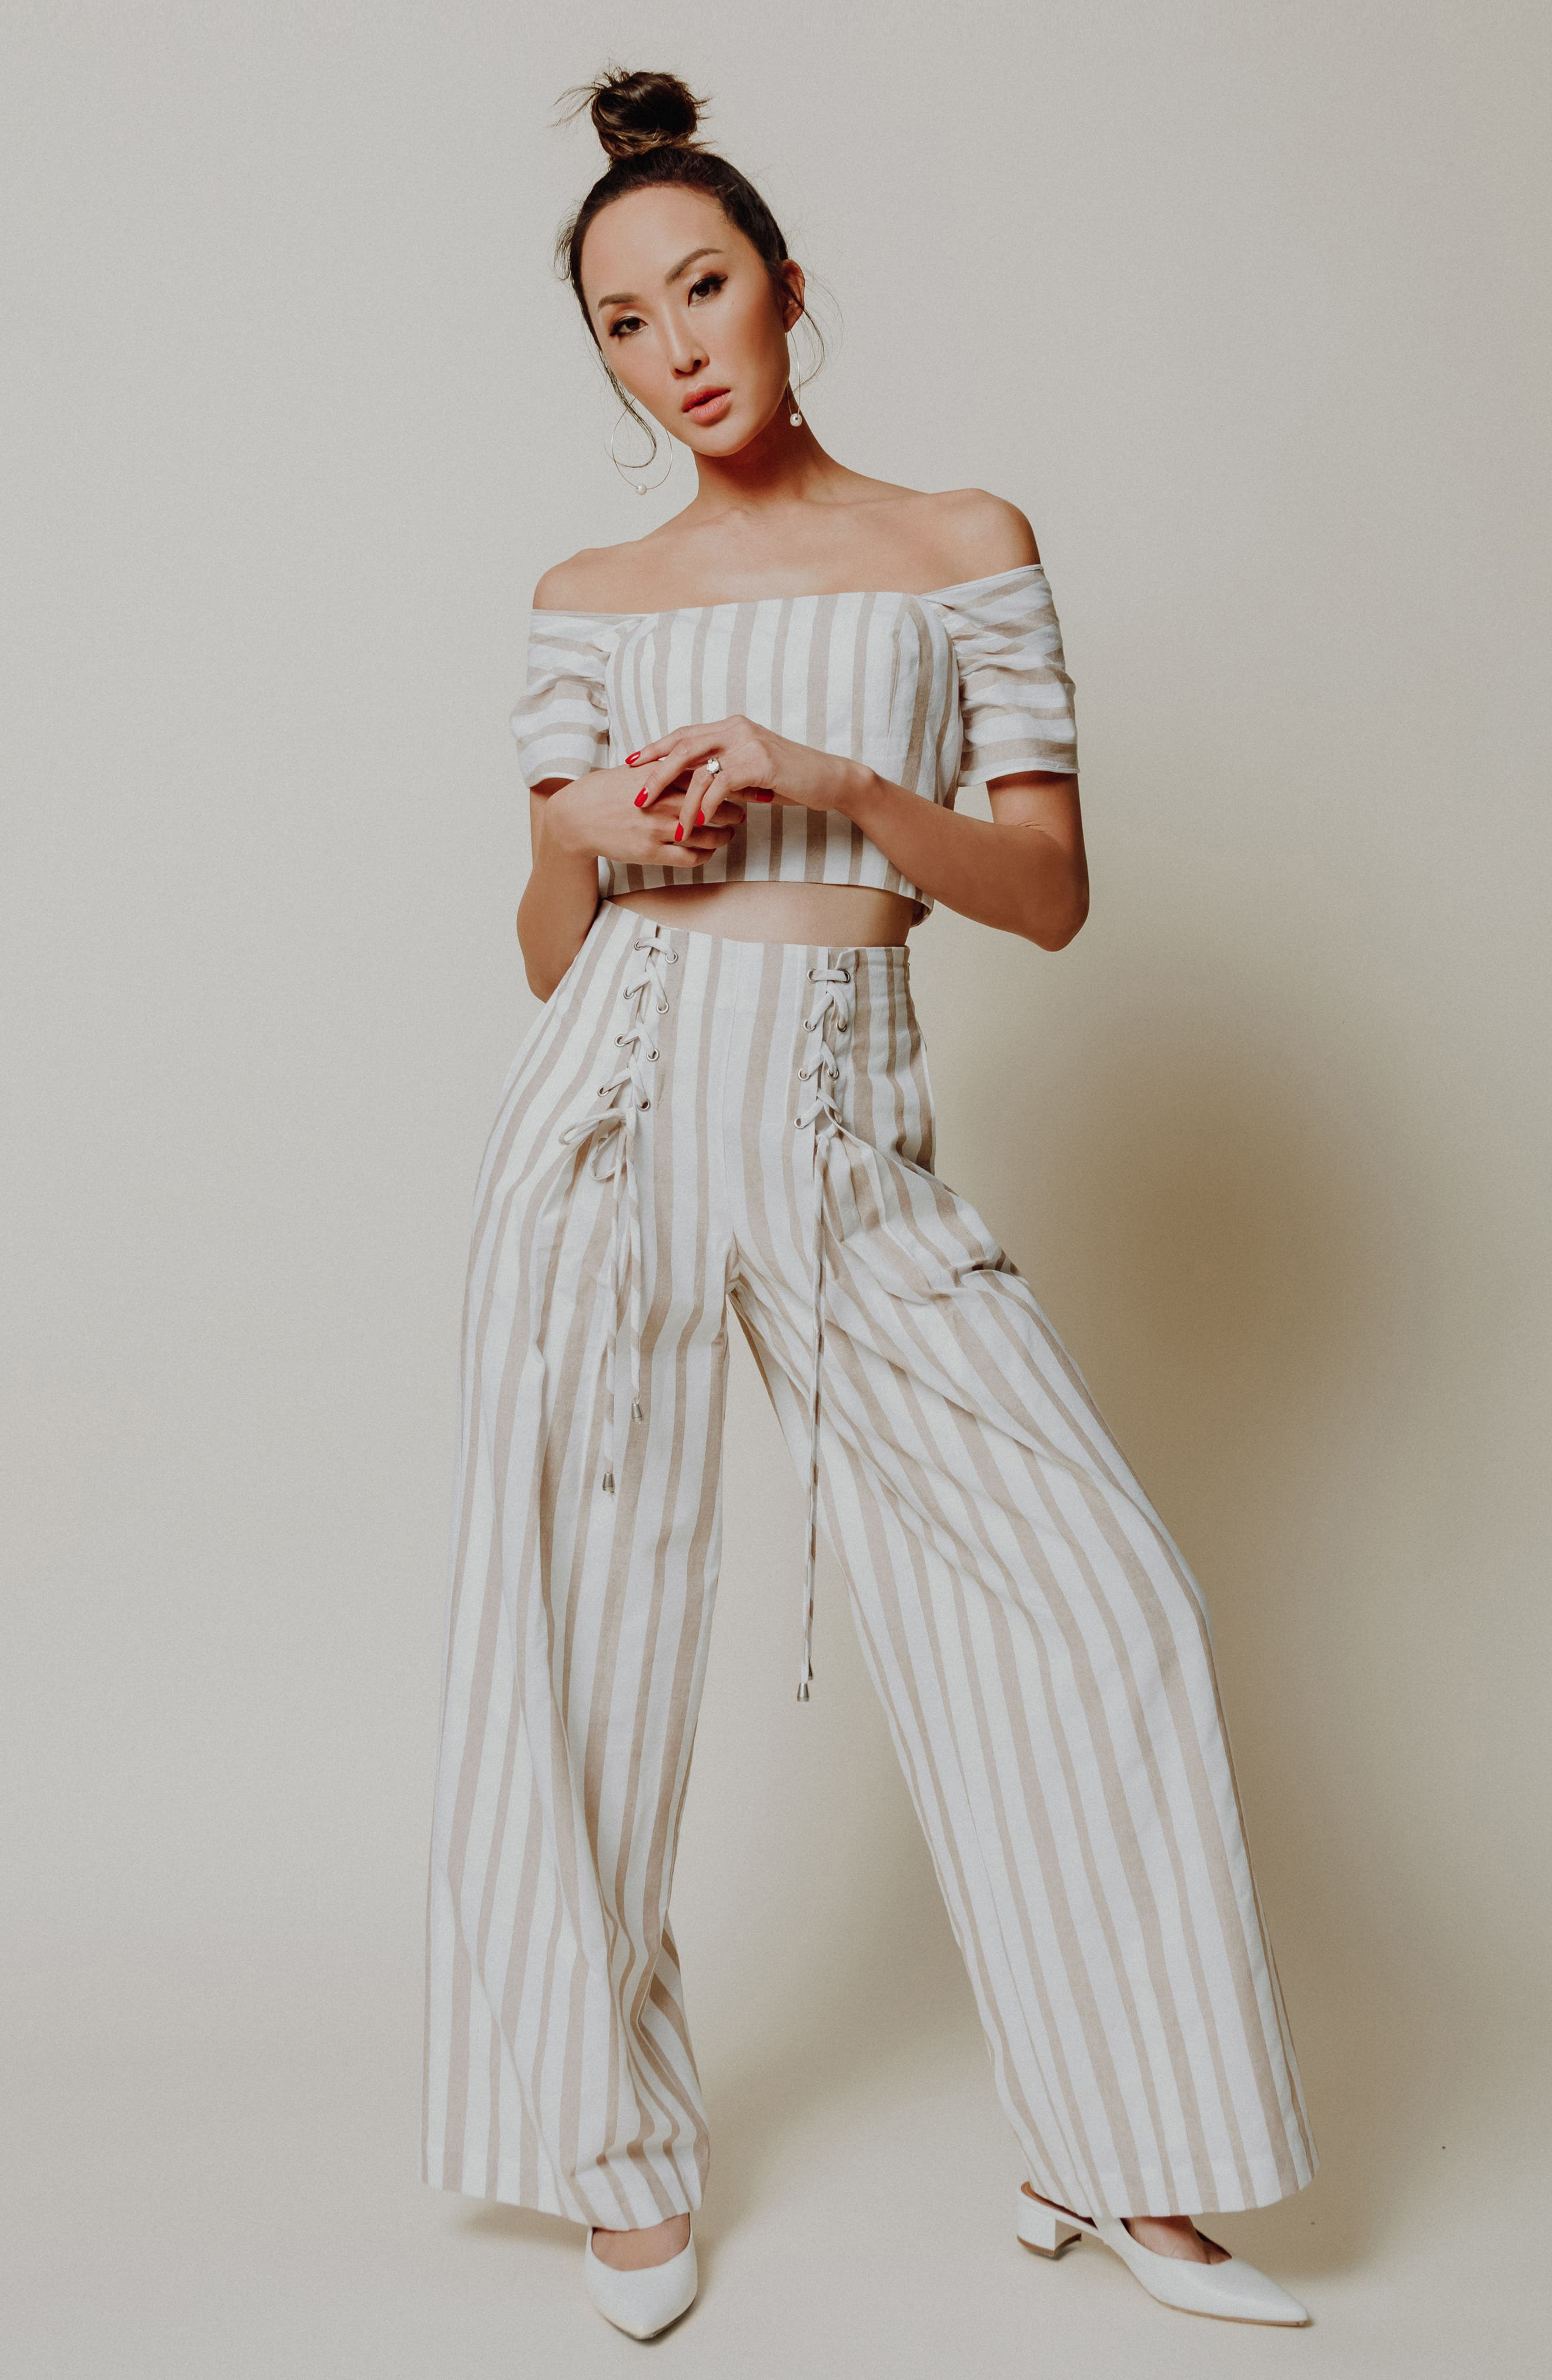 Chriselle x J.O.A. Lace-Up High Waist Wide Leg Pants,                             Alternate thumbnail 8, color,                             250